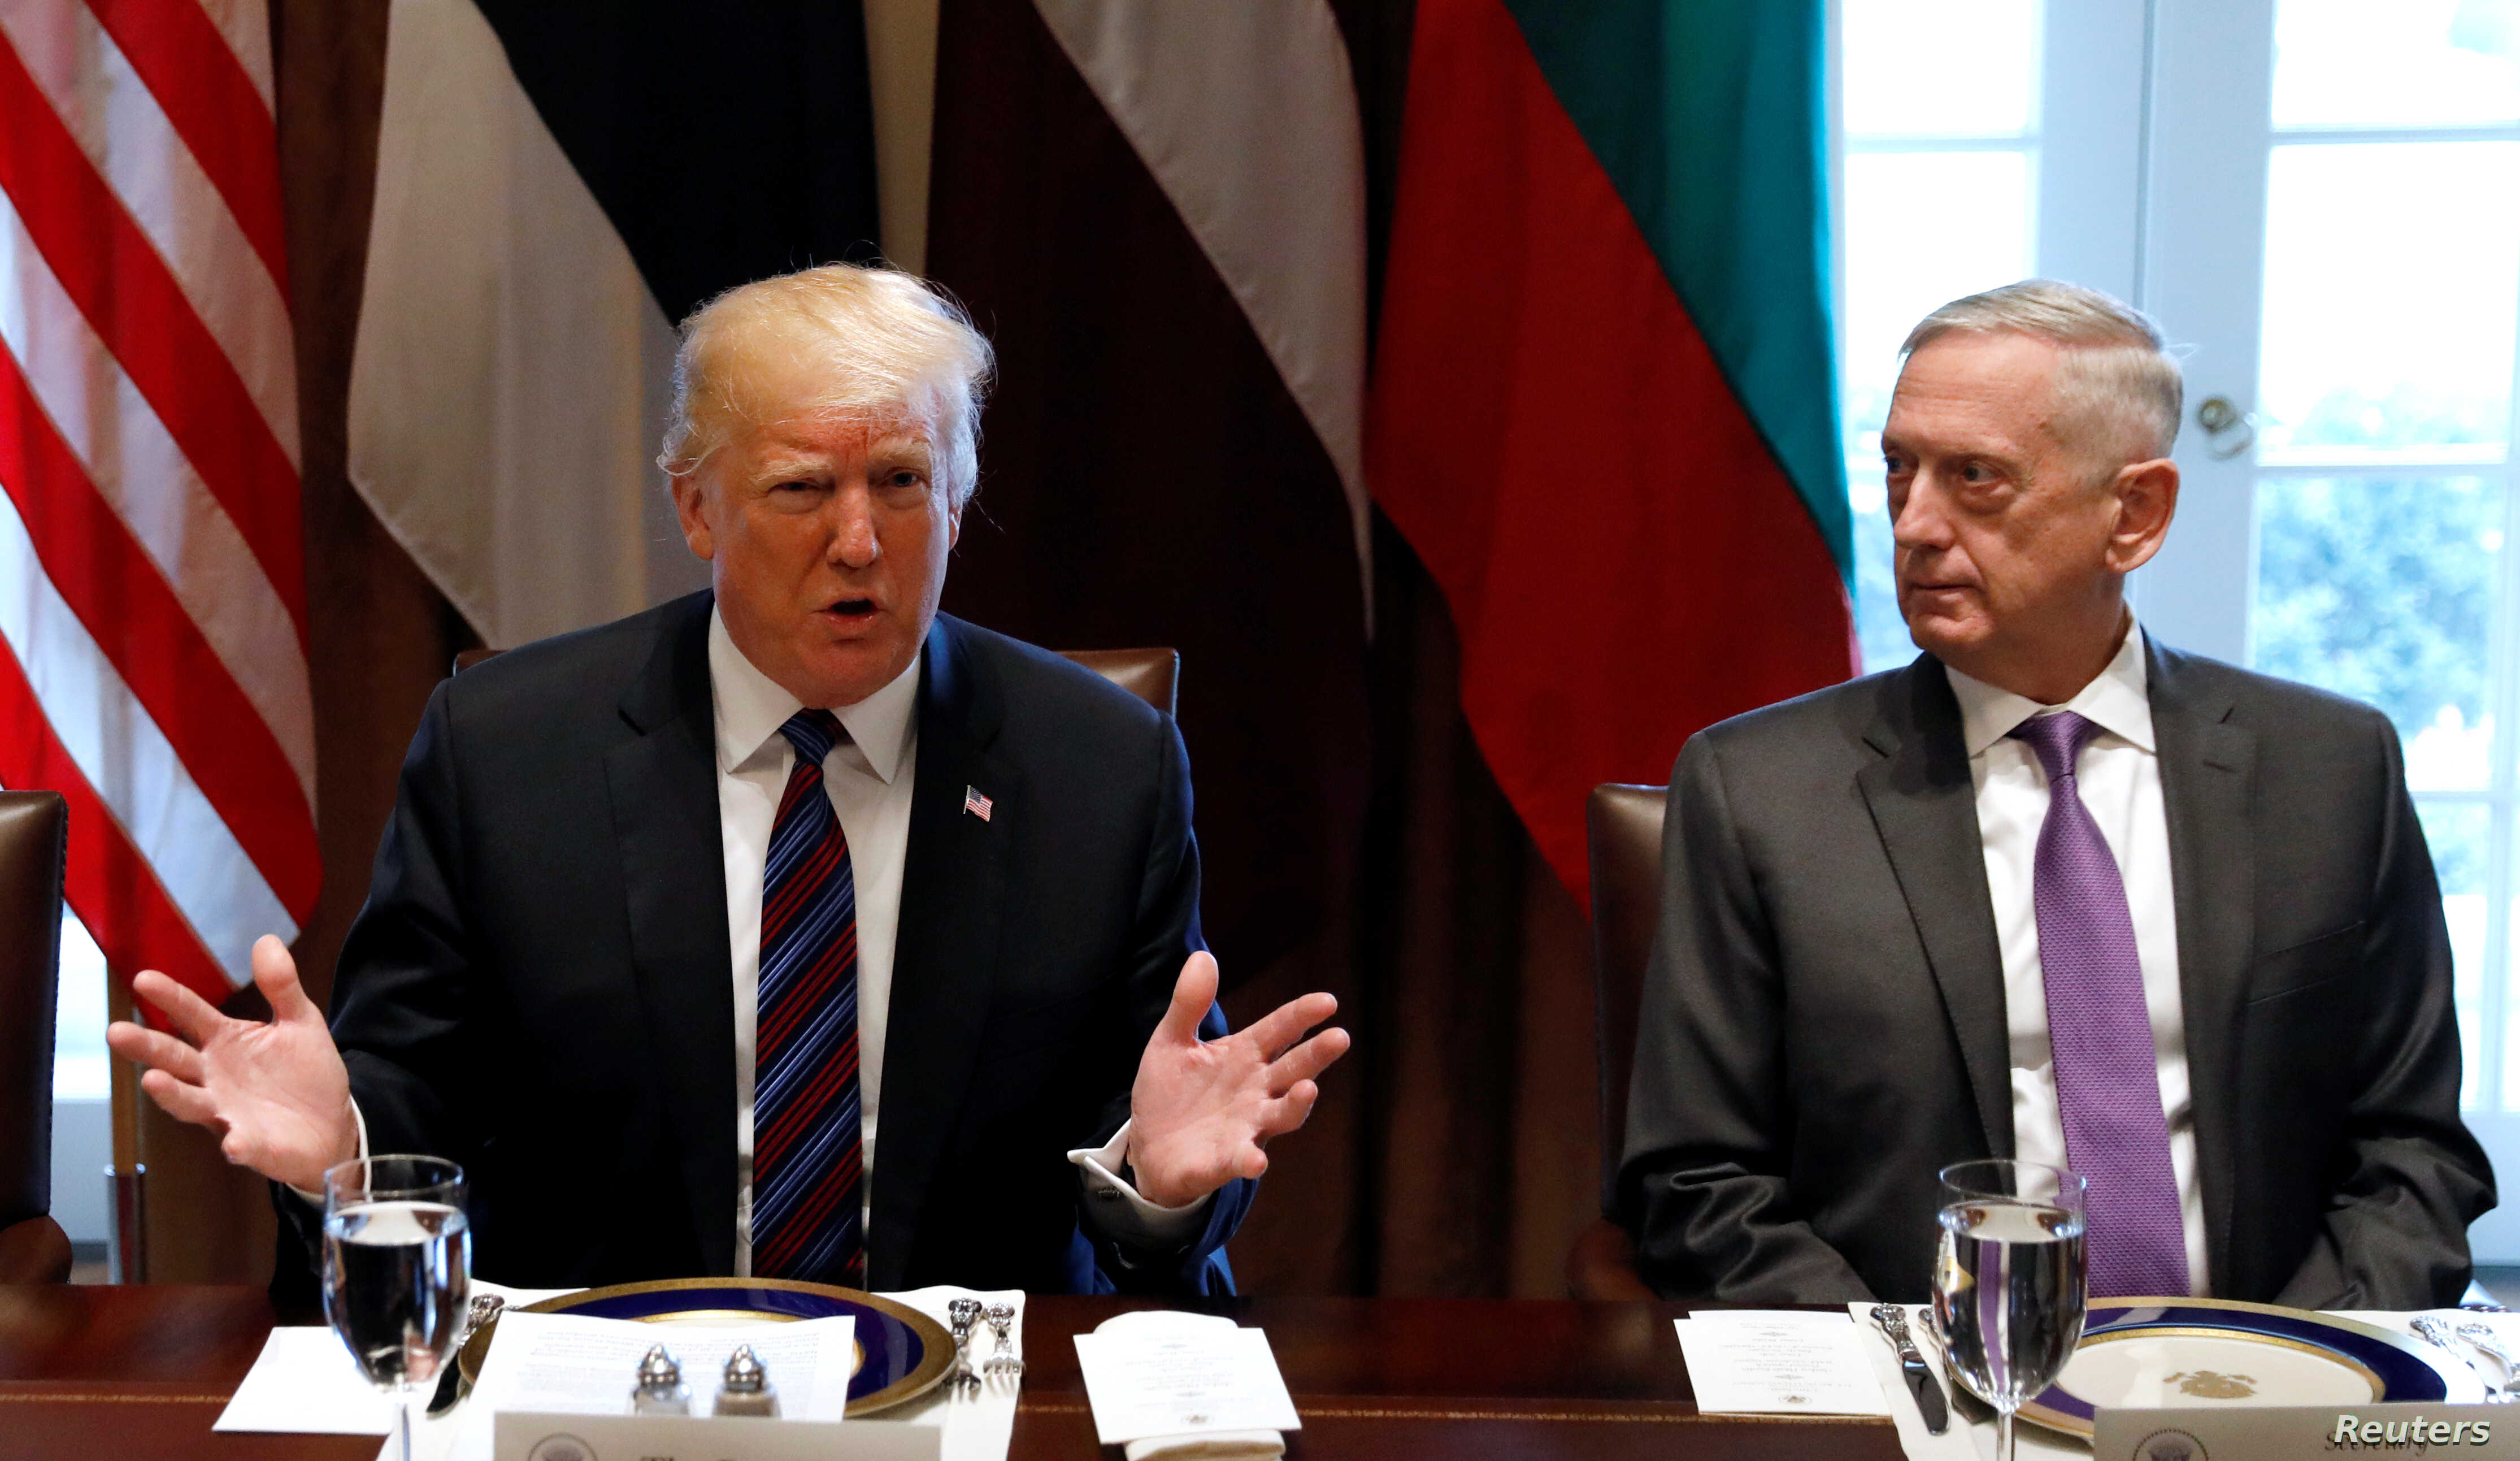 FILE - With U.S. Secretary of Defense James Mattis at his side, U.S. President Donald Trump speaks during a meeting at the White House in Washington, April 3, 2018.